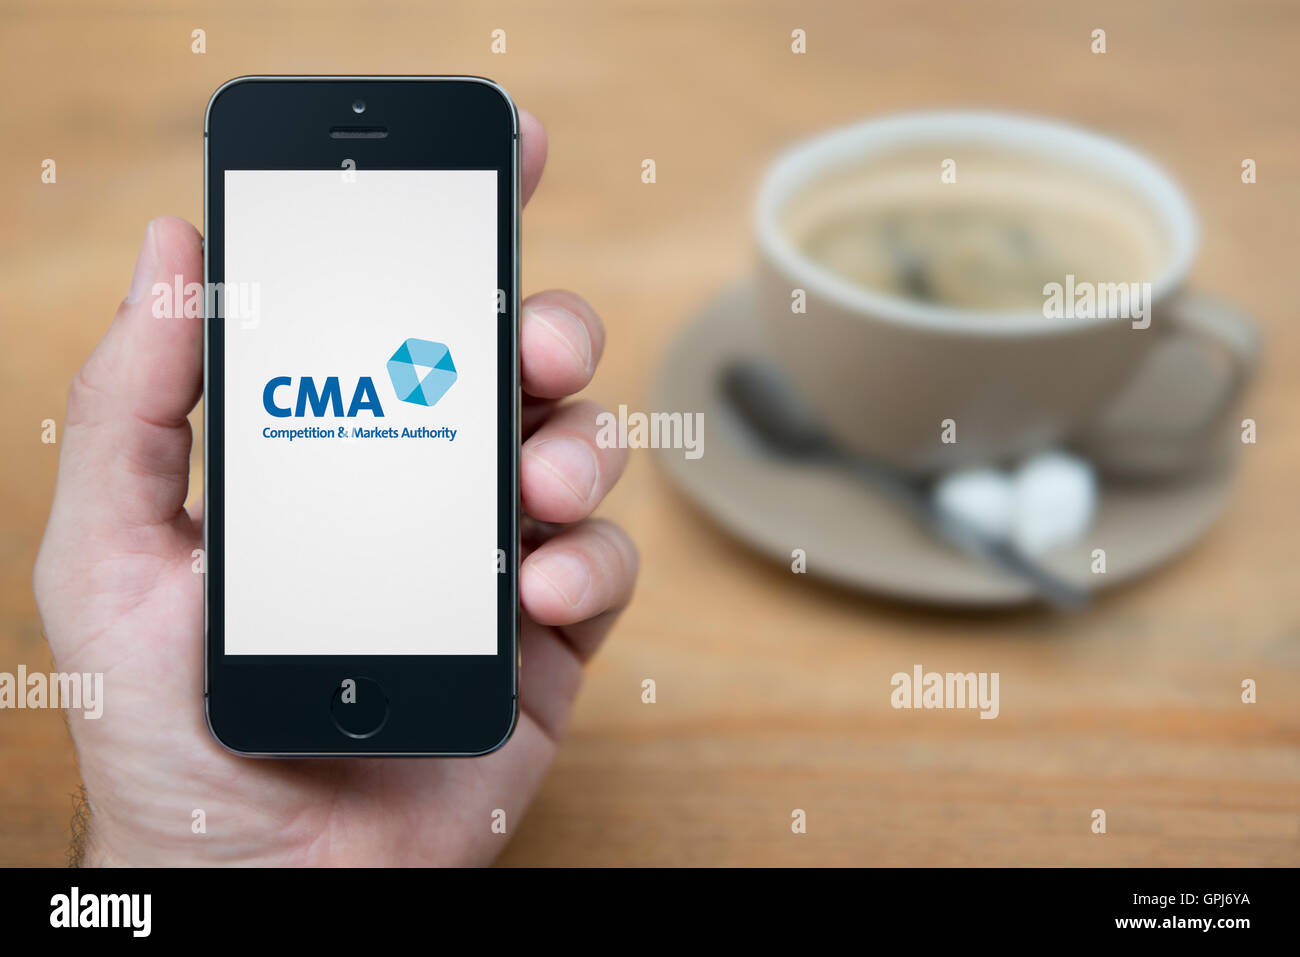 A man looks at his iPhone which displays the UK Government Competition and Markets Authority logo (Editorial use - Stock Image